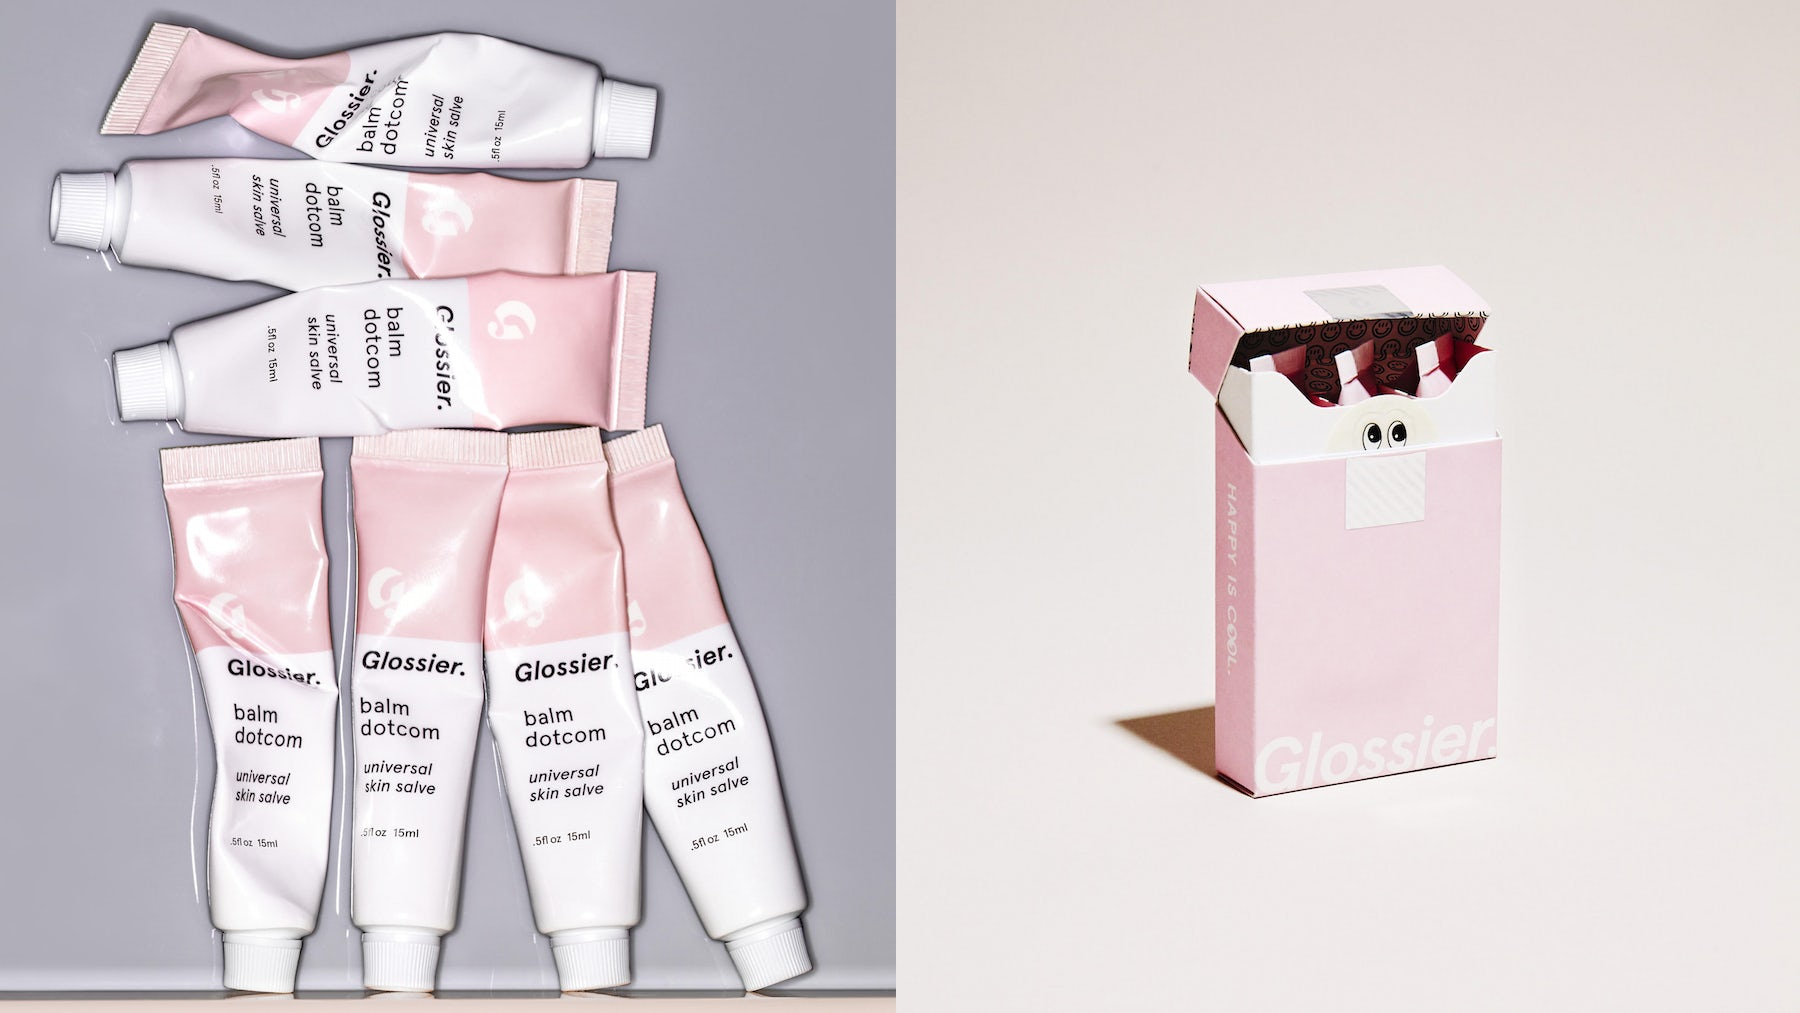 Glossier's balm dotcom | Source: Courtesy